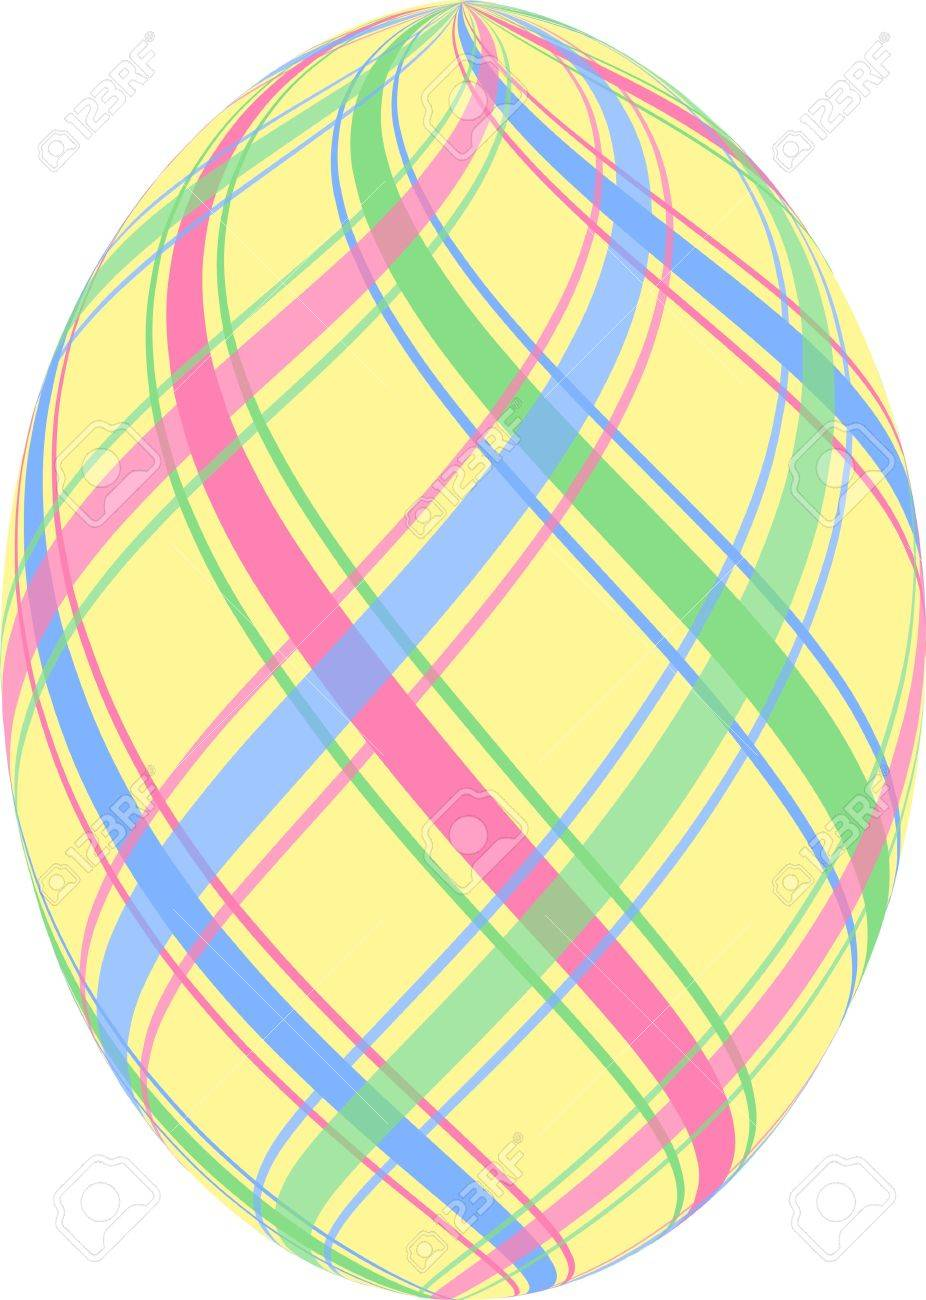 Yellow Easter Egg With Pastel Blue Pink And Green Stripes Stock Photo